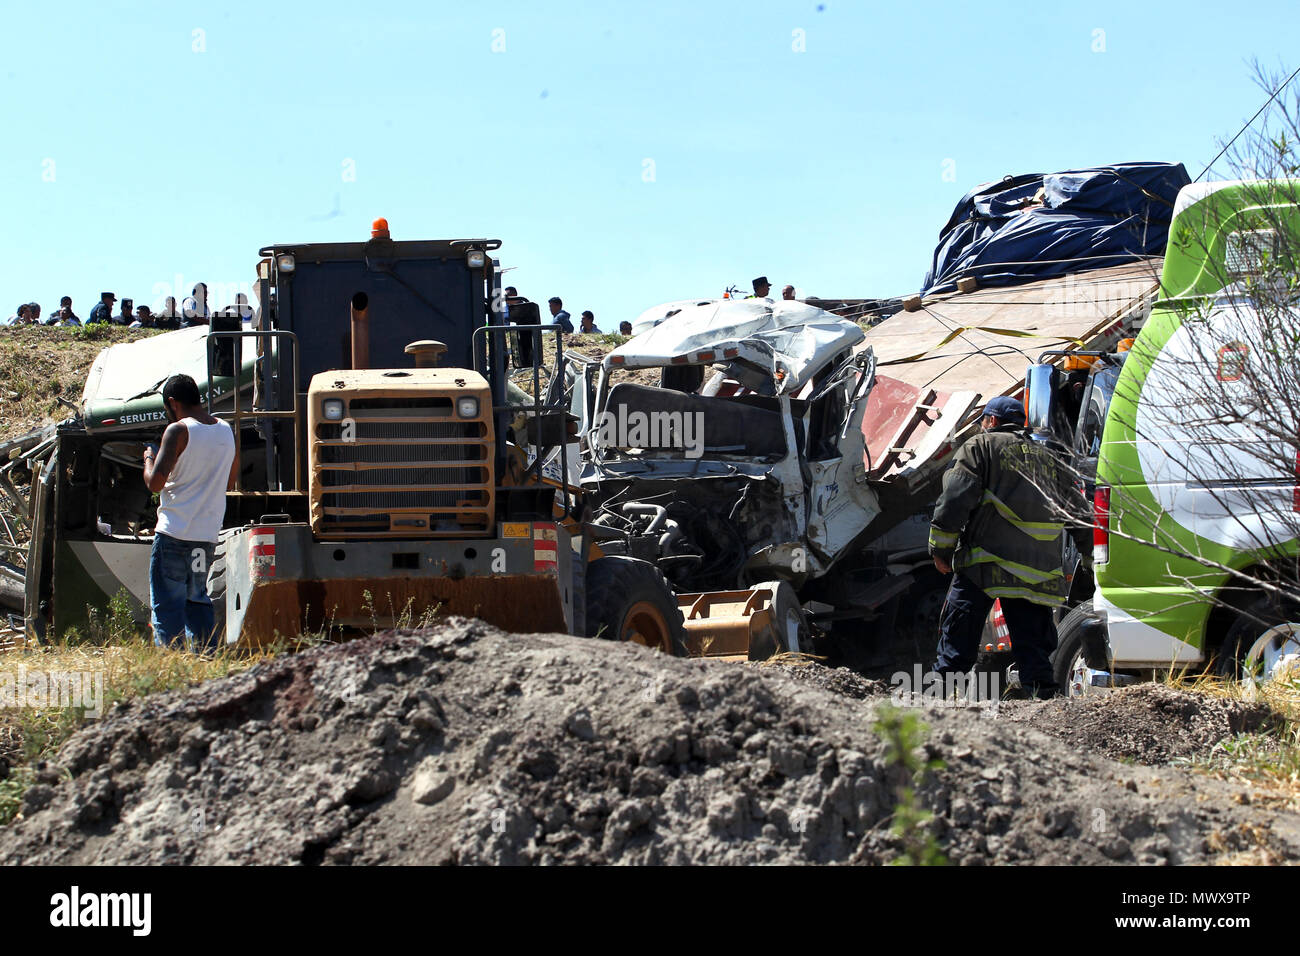 Texcoco-Calpulapan highway, Mexico. 2nd Jun, 2018. General view of the accident at kilometer 32 of the Texcoco-Calpulapan highway, Mexico, on 2 June 2018. Eight people were killed and another thirteen were injured when a passenger bus and a truck transporting construction materials hit a highway in the State of Mexico, local media reported. EFE/STR Credit: EFE News Agency/Alamy Live News Stock Photo